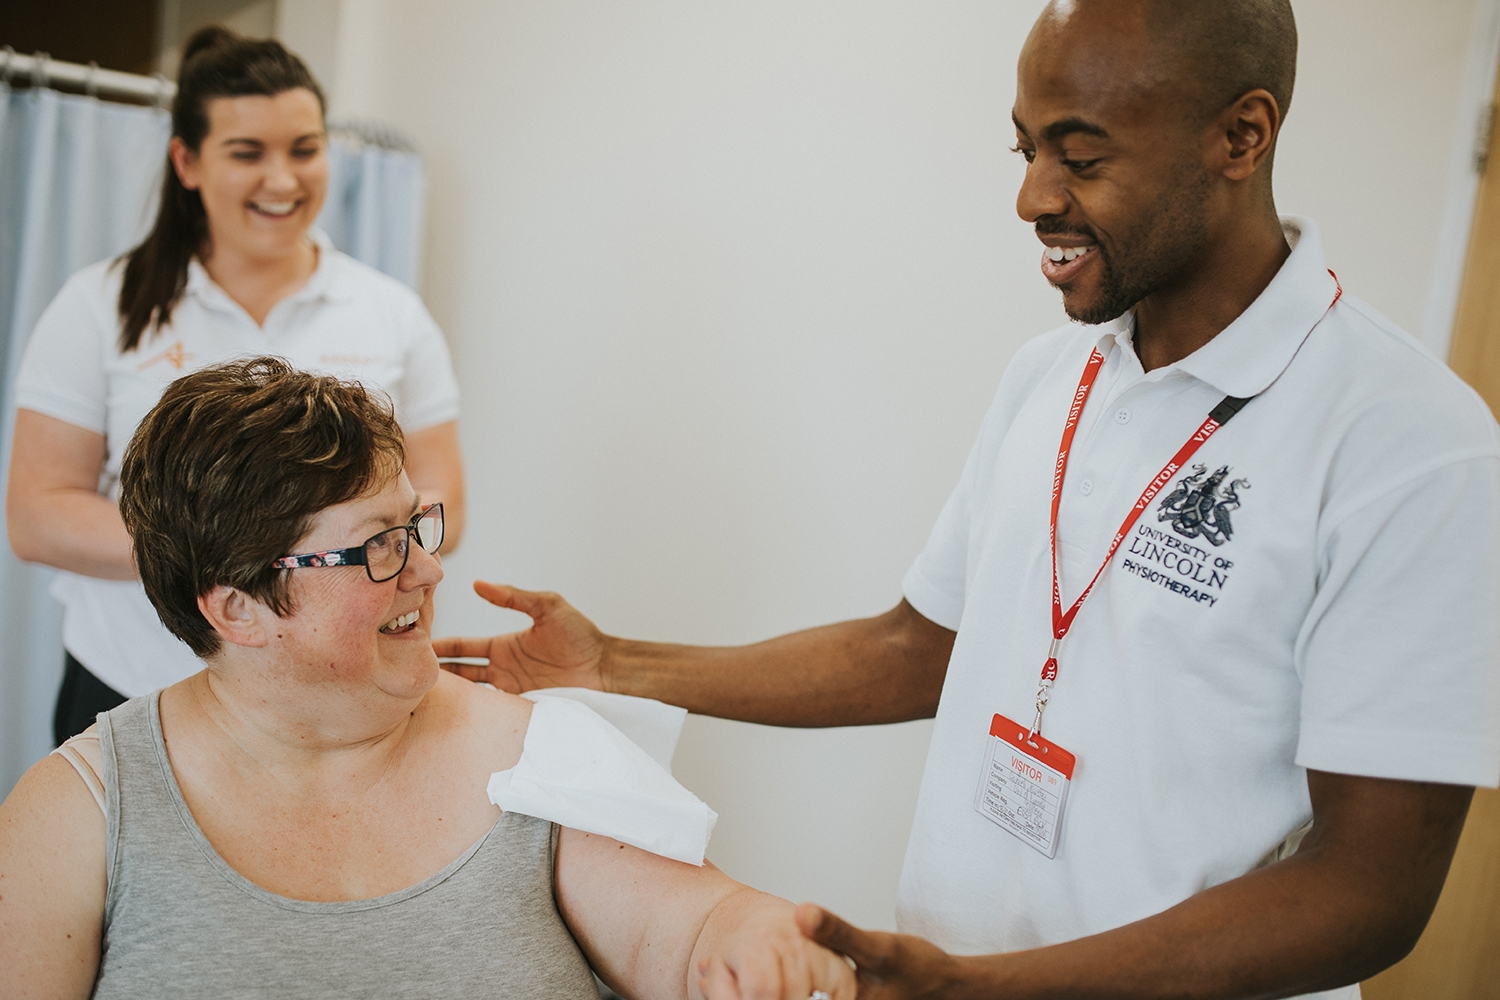 Physiotherapy student placement with Gameli